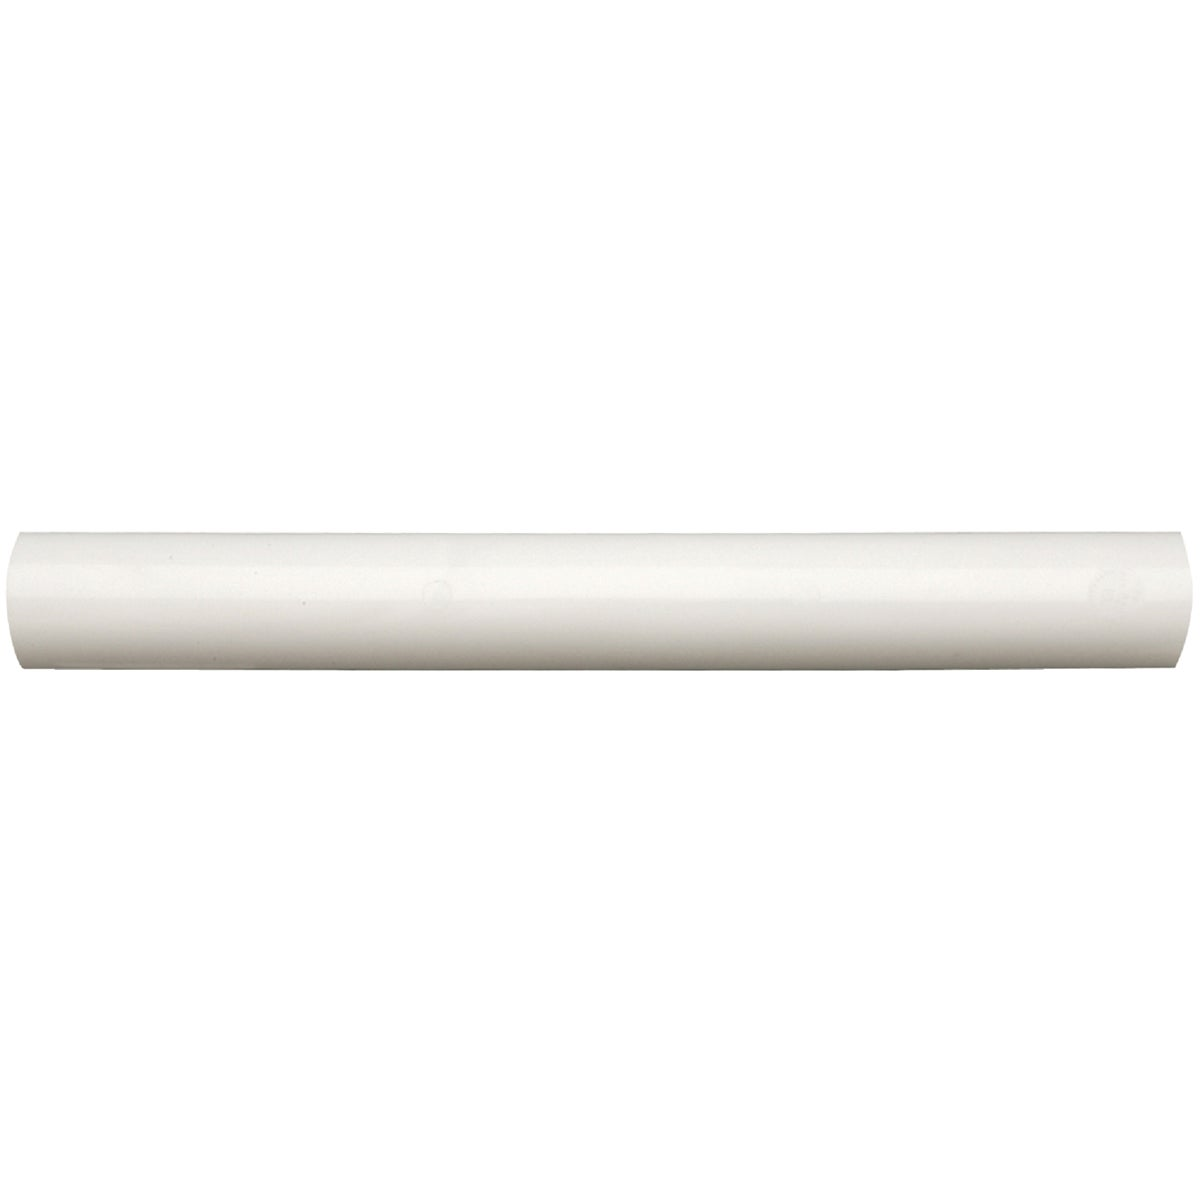 1-1/2X12 PLAIN END TUBE - 489905 by Plumb Pak/keeney Mfg